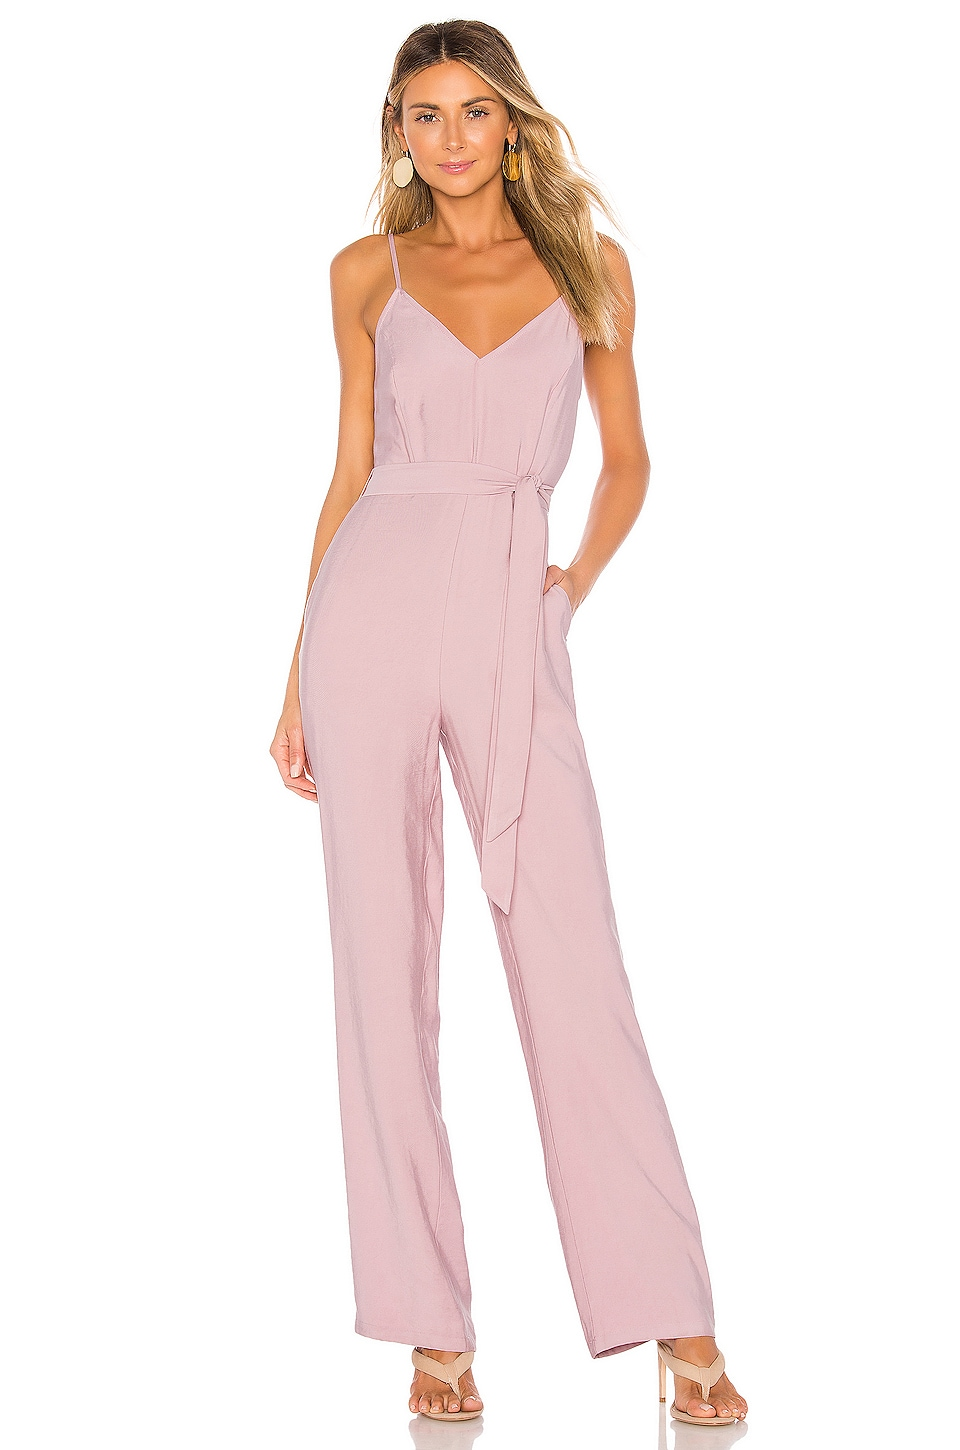 Lovers + Friends Jenny Jumpsuit in Lavender